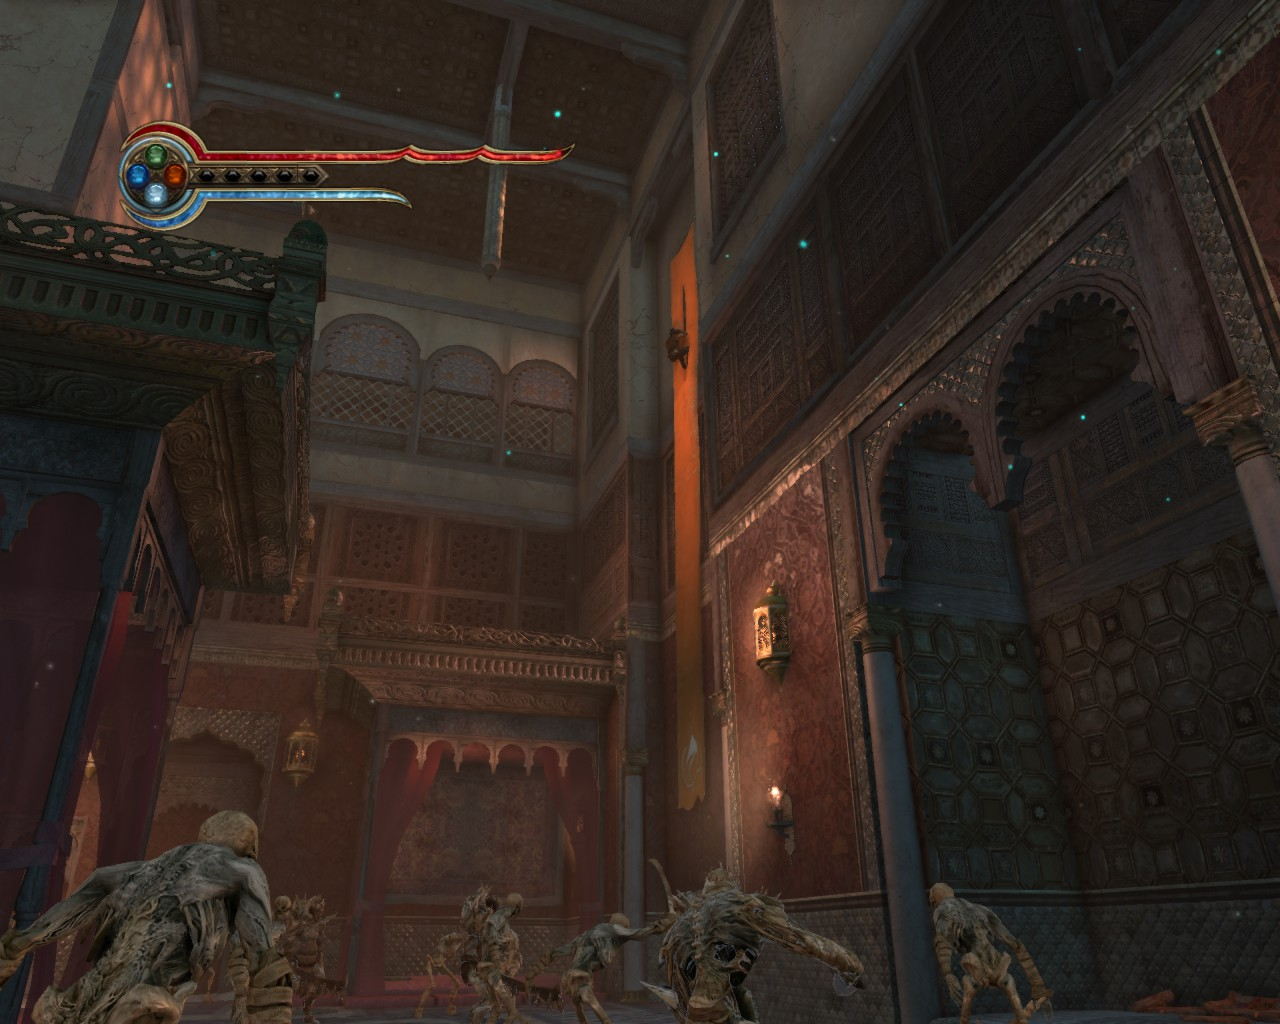 Prince of Persia 2014-06-03 21-37-30-45.jpg - Prince of Persia: The Forgotten Sands